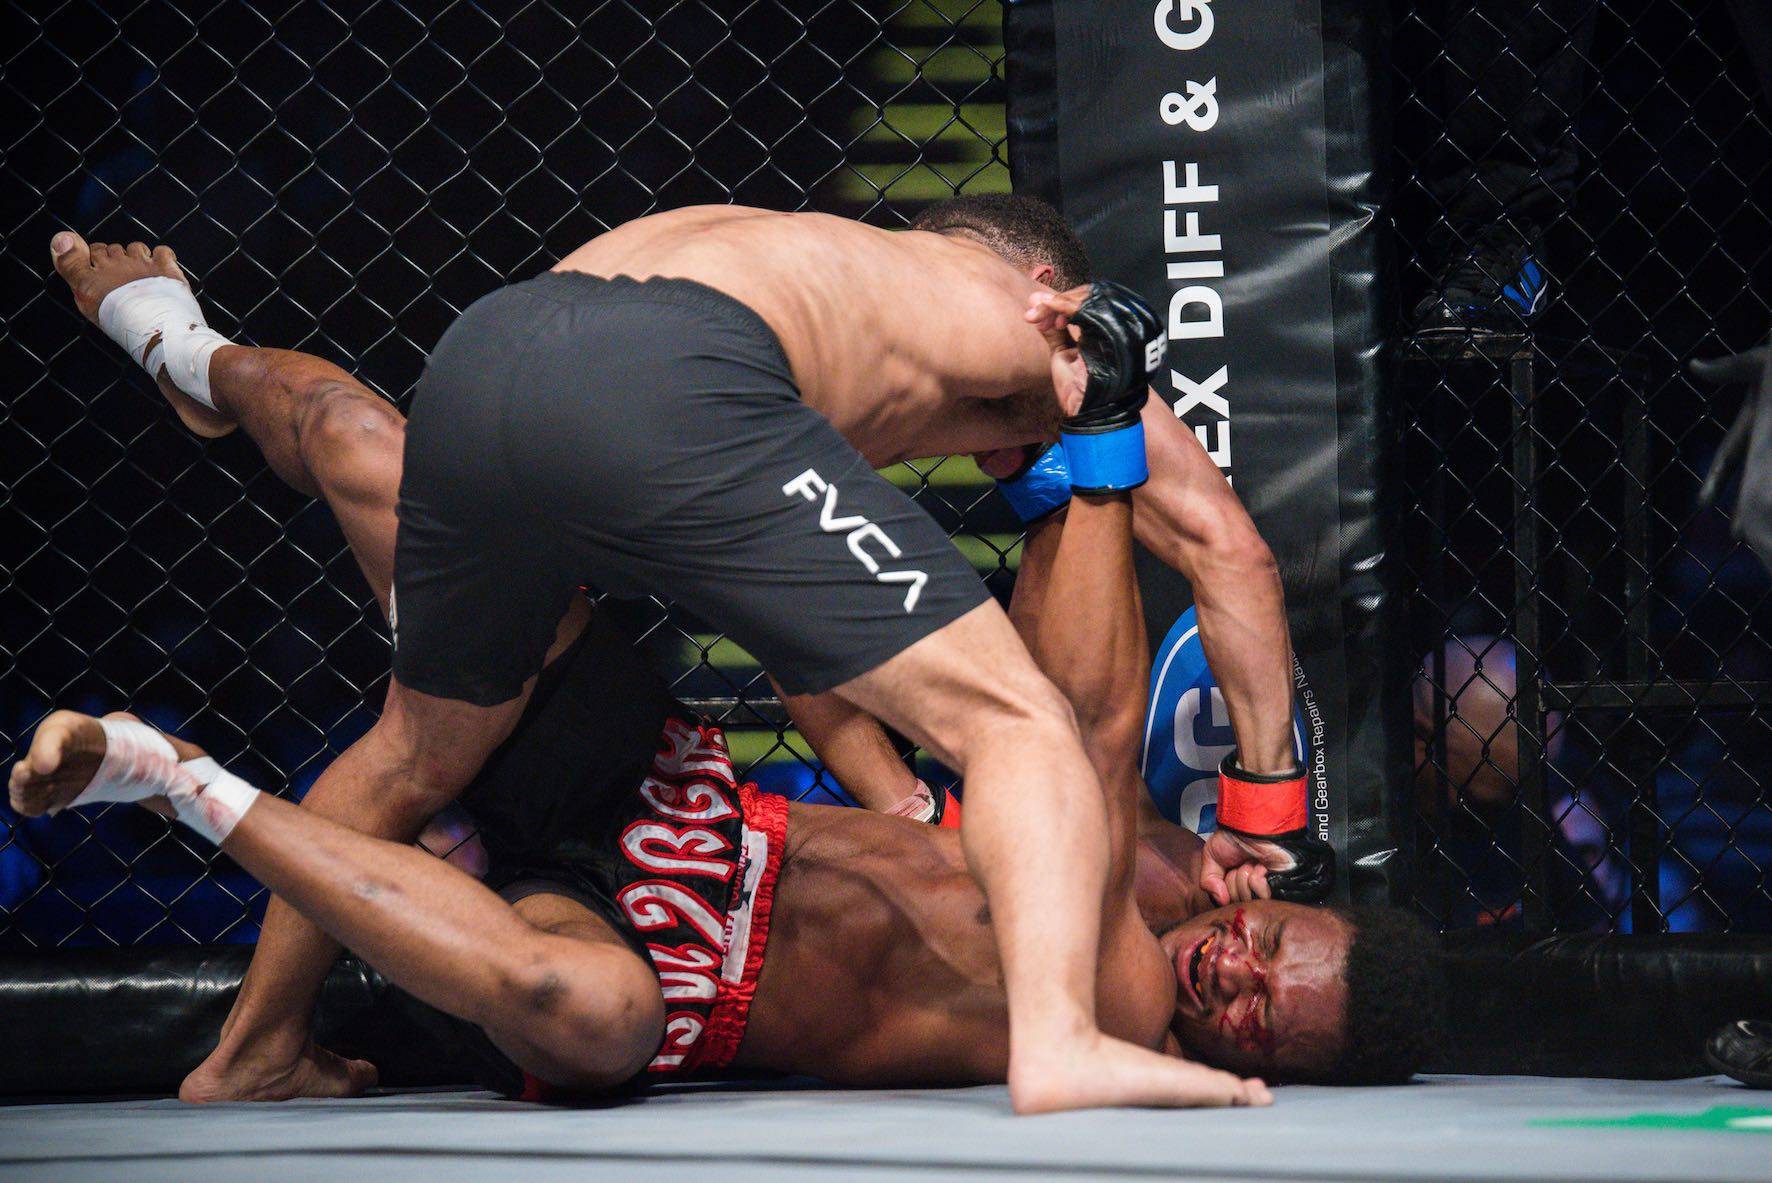 Results from all 11 Mixed Martial Arts bouts from EFC 75